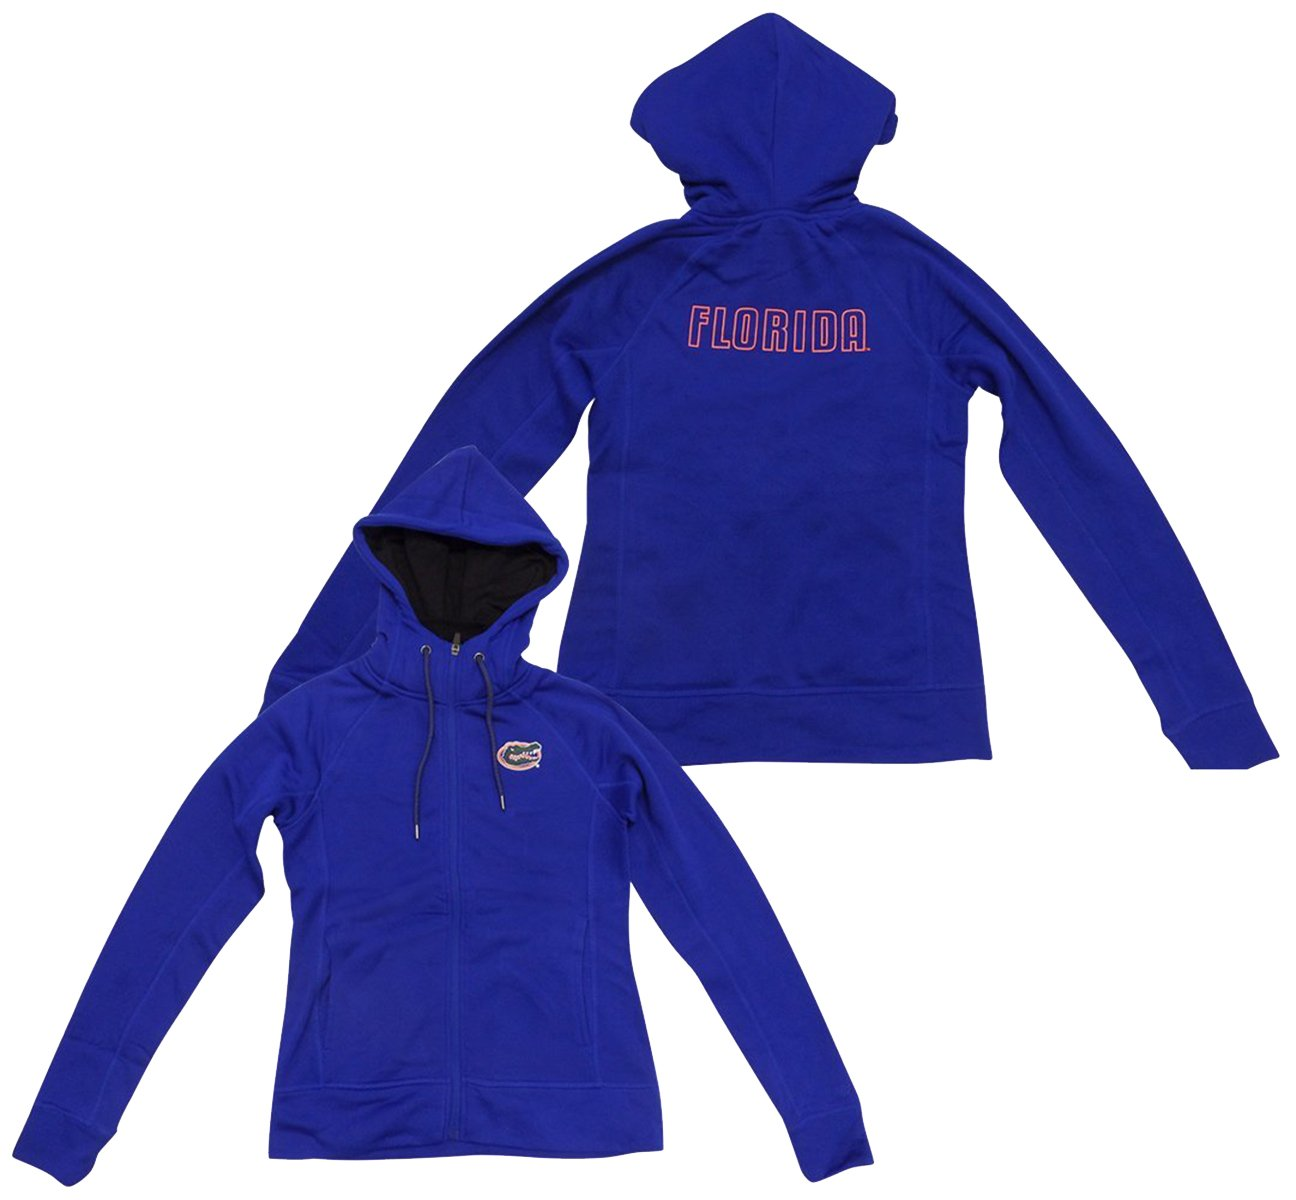 Florida Gators Women 's Medley Poly Fleece Full Zipフード付きスウェットシャツ Large  B073XH1TGD